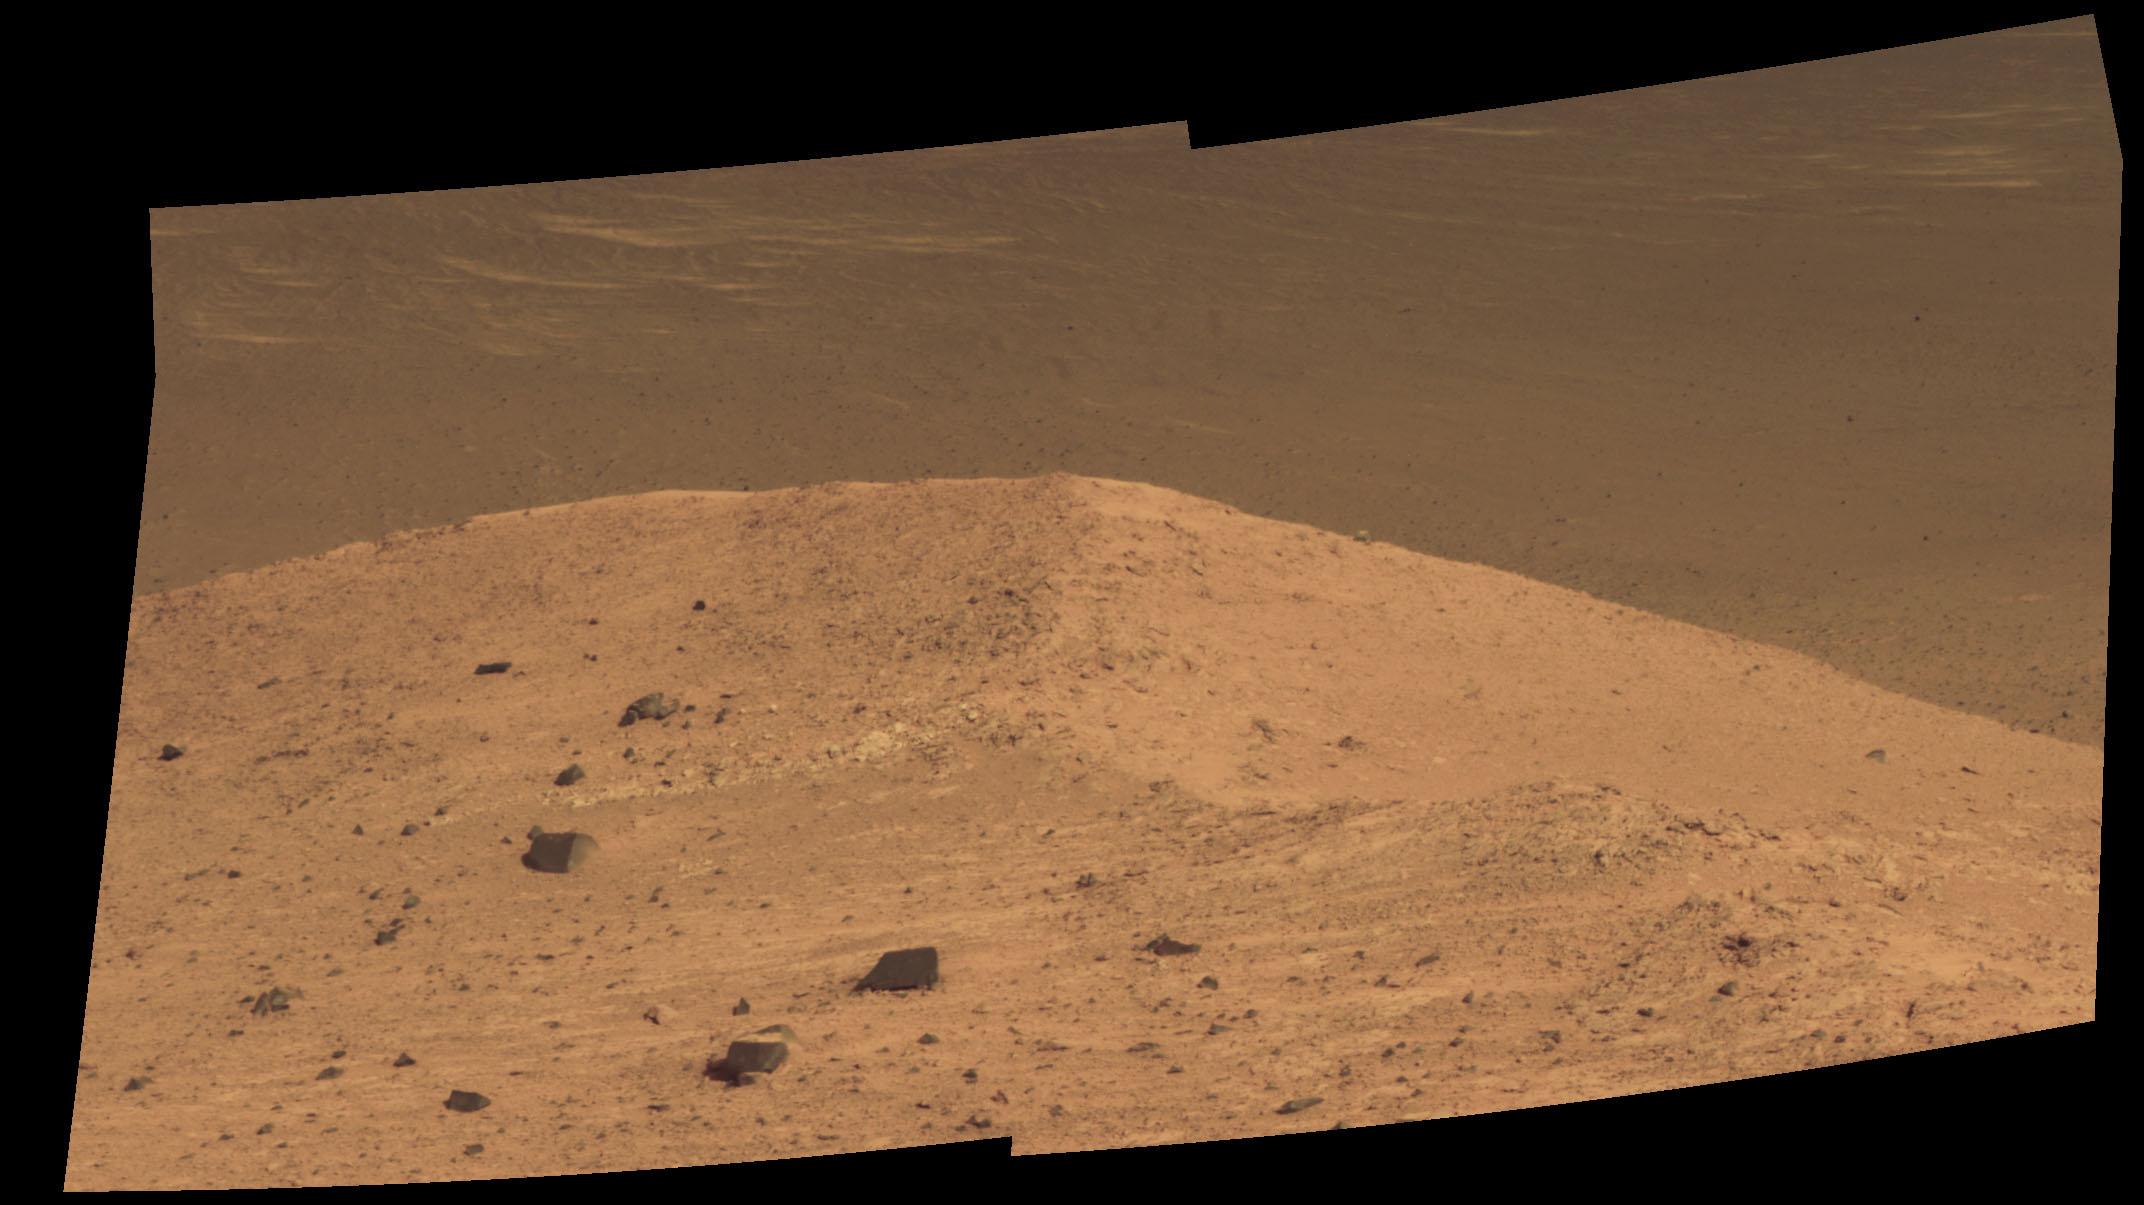 mars rover opportunity current location - photo #14